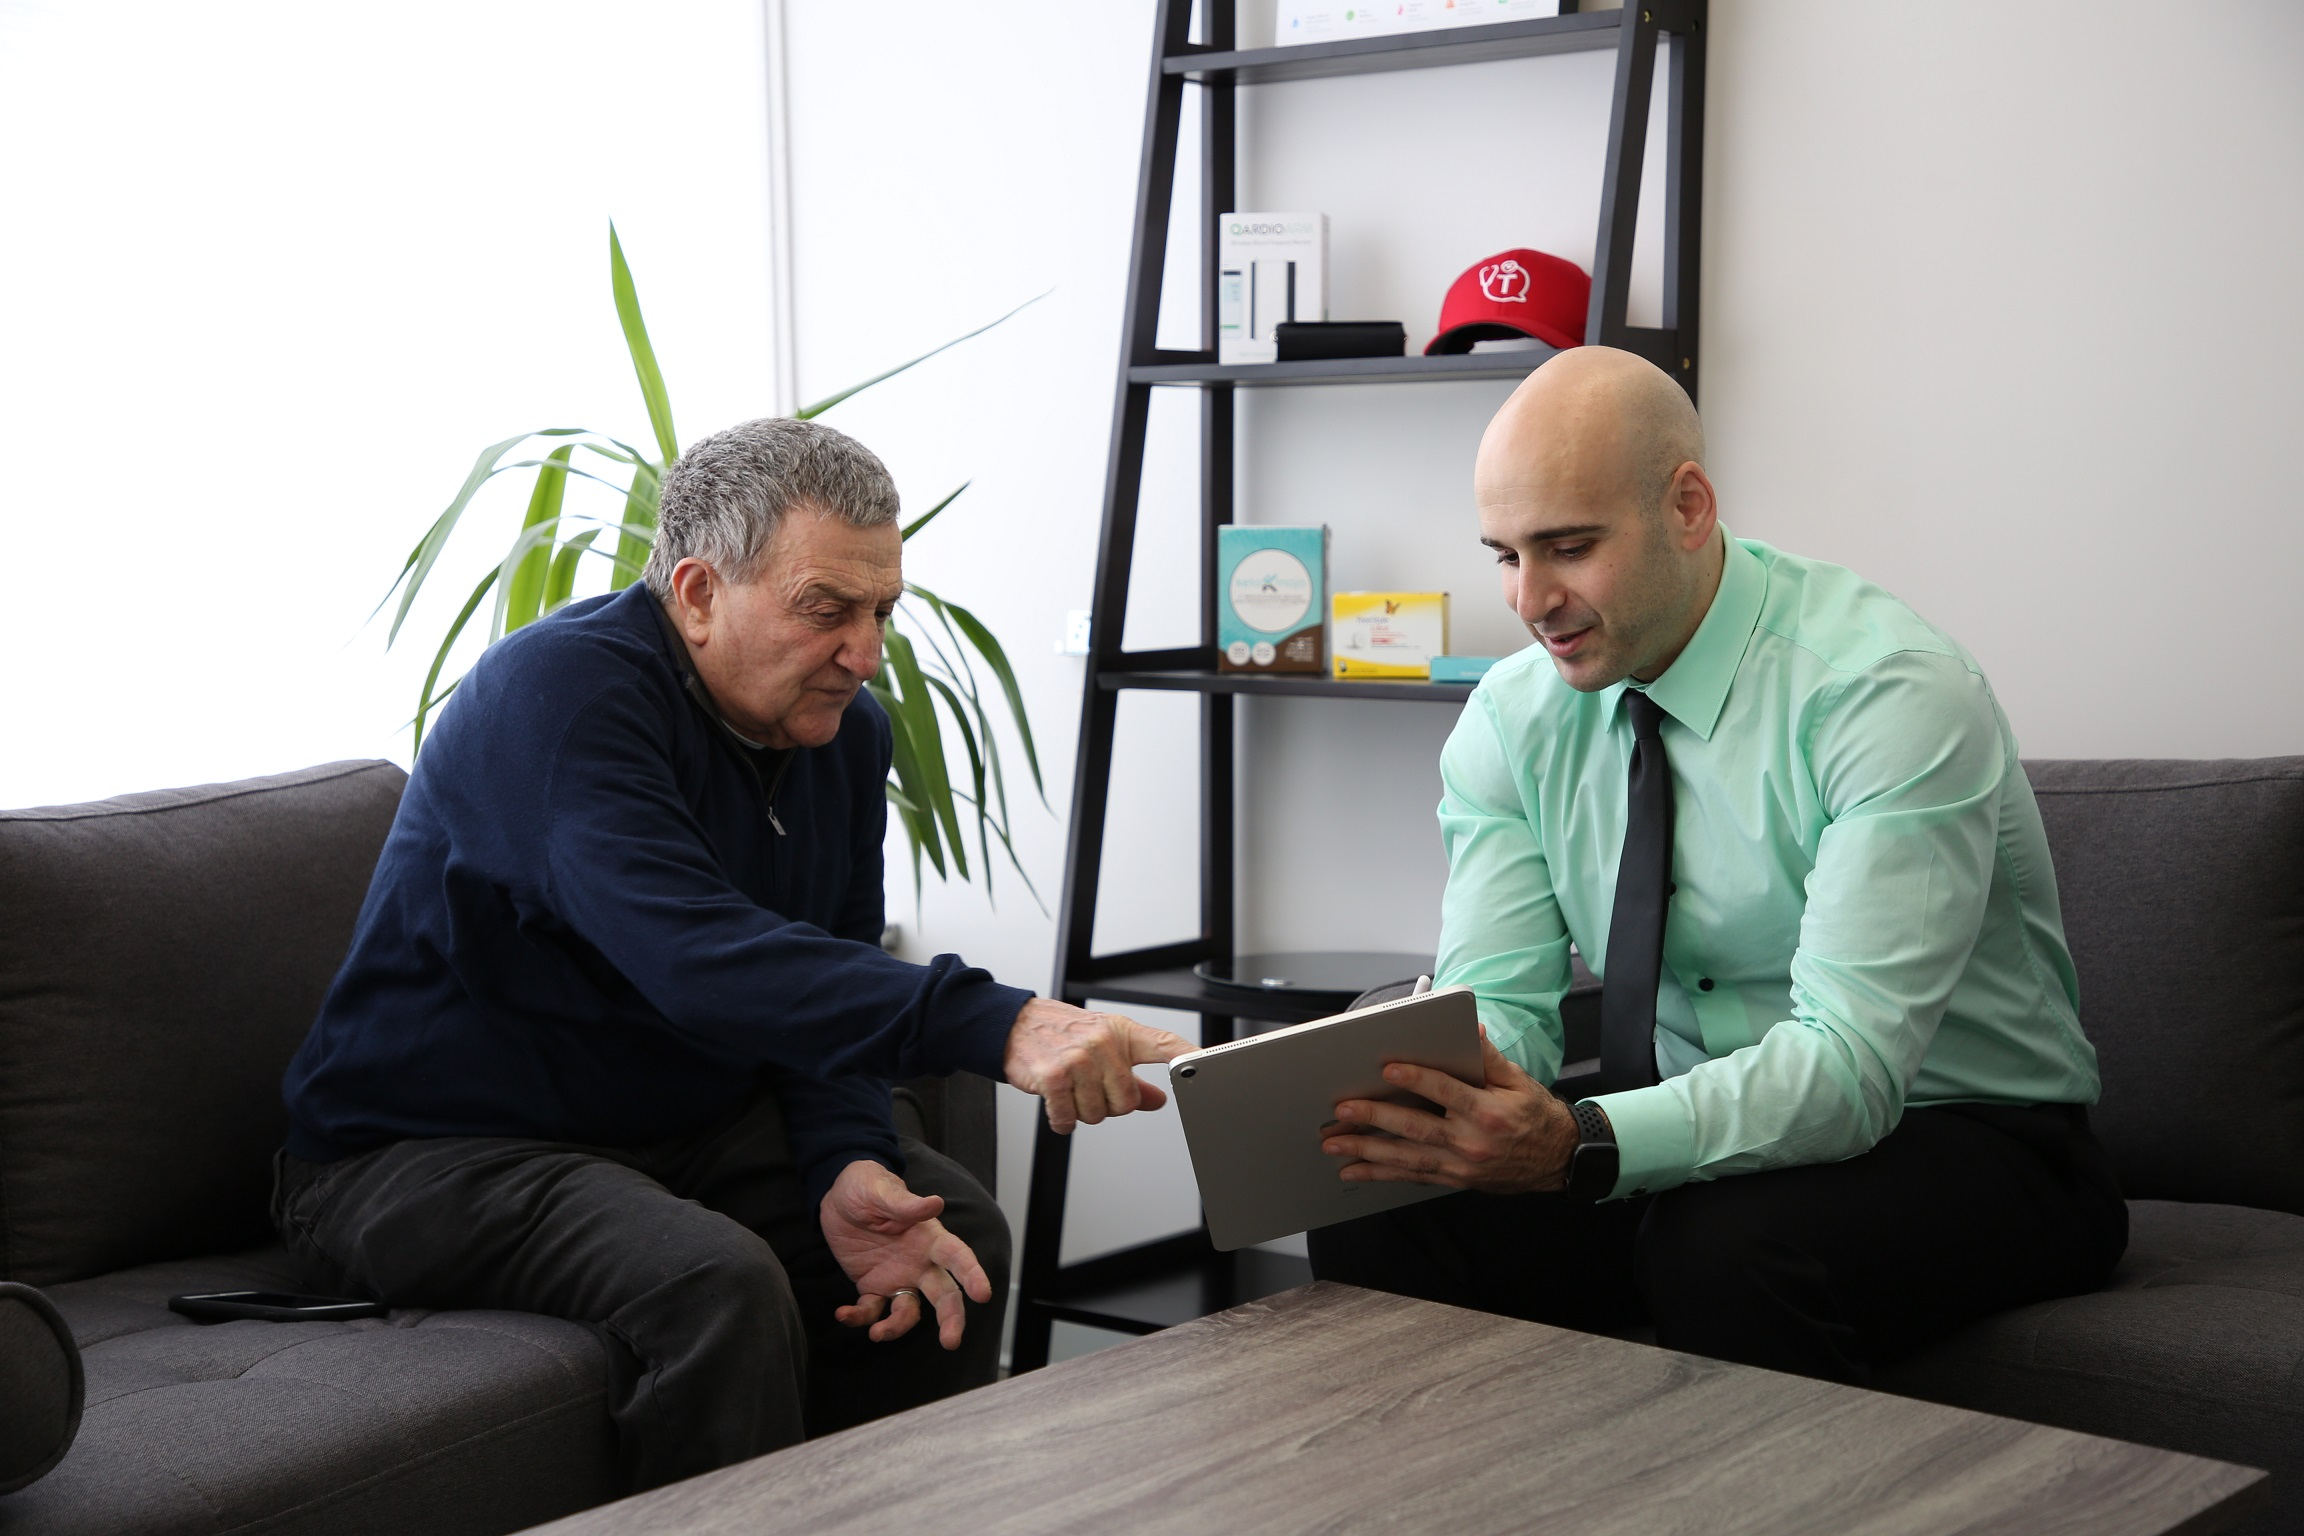 Dr. Tro Kalayjian consults with a patient in his office prior to the COVID-19 threat. Kalayjian's office is fully equipped to treat patients using remote monitoring tools, ensuring continuity of care.